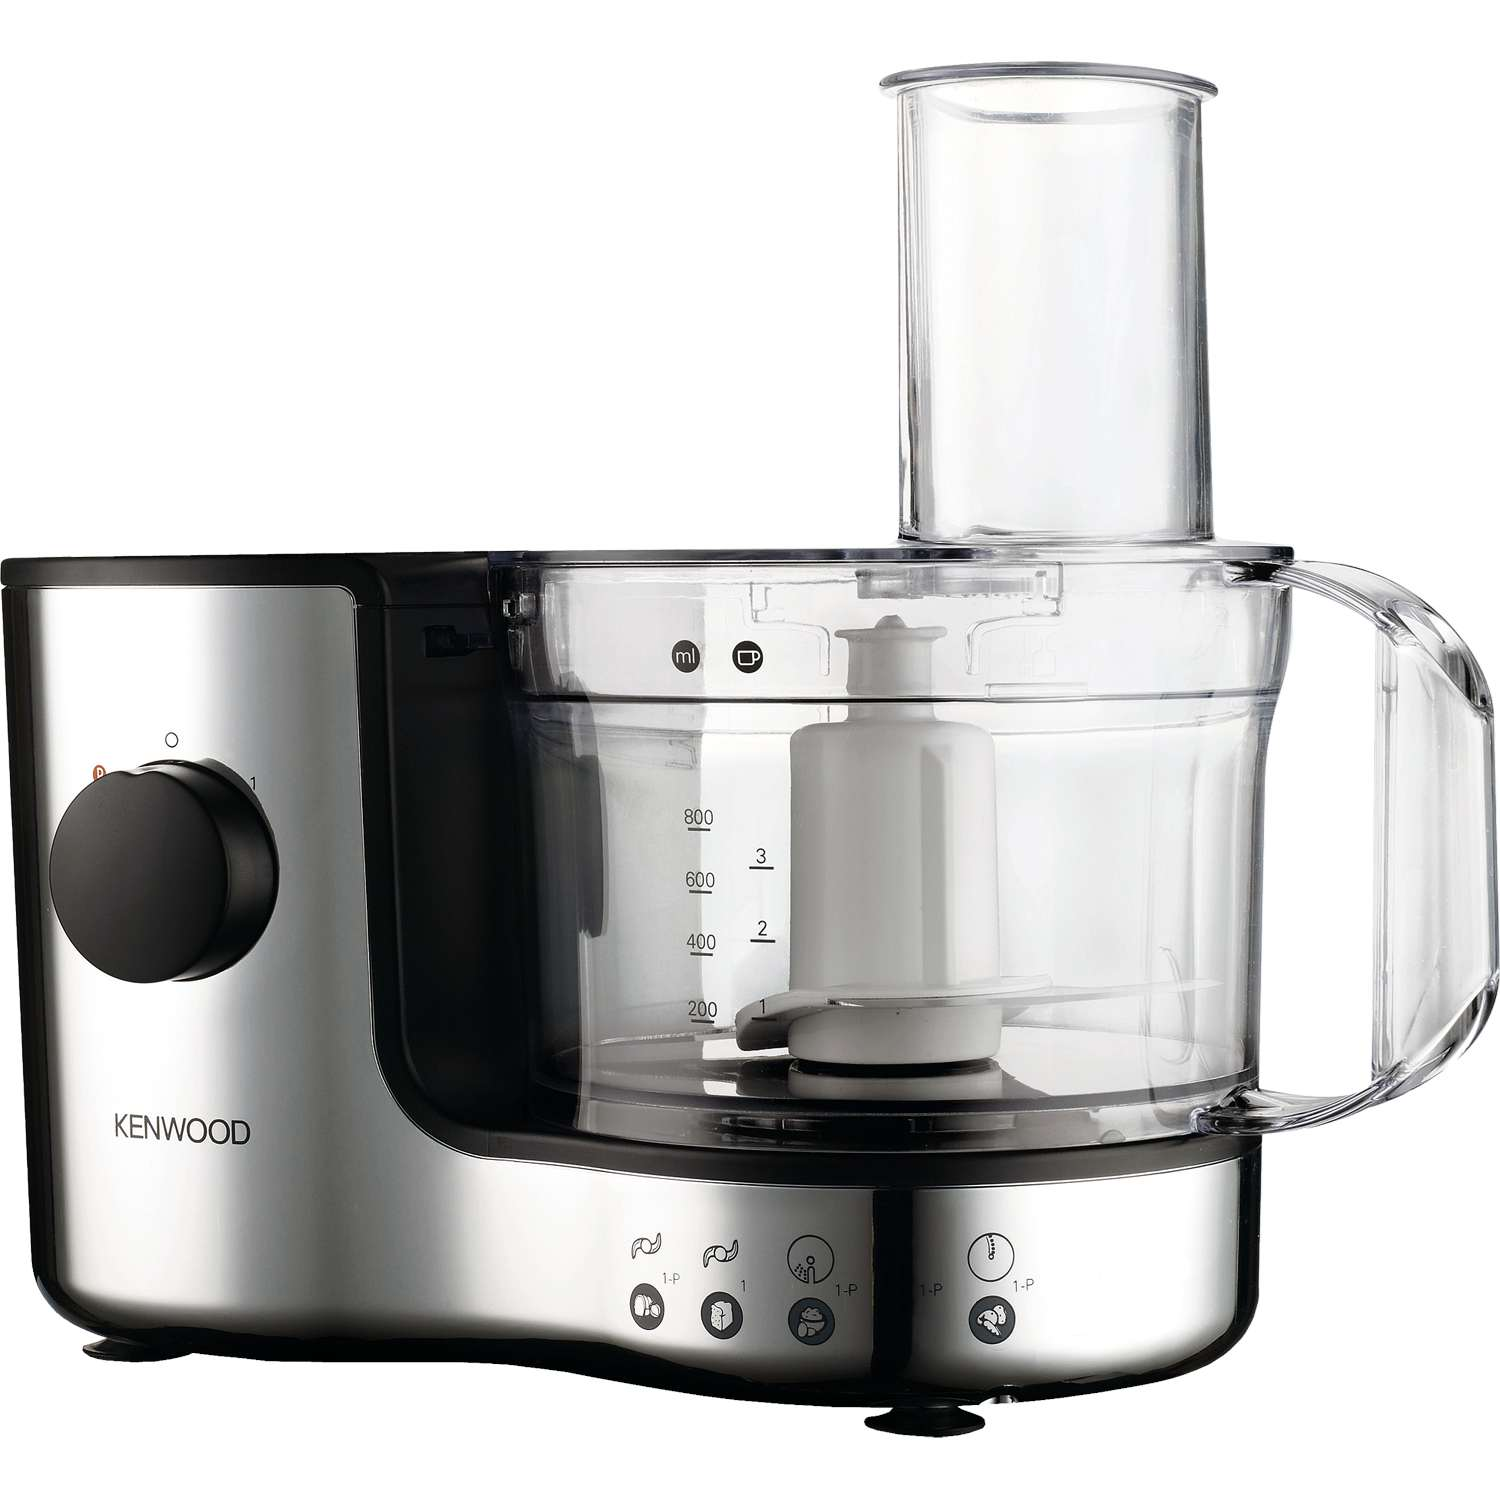 Kenwood Fp Compact Food Processor W